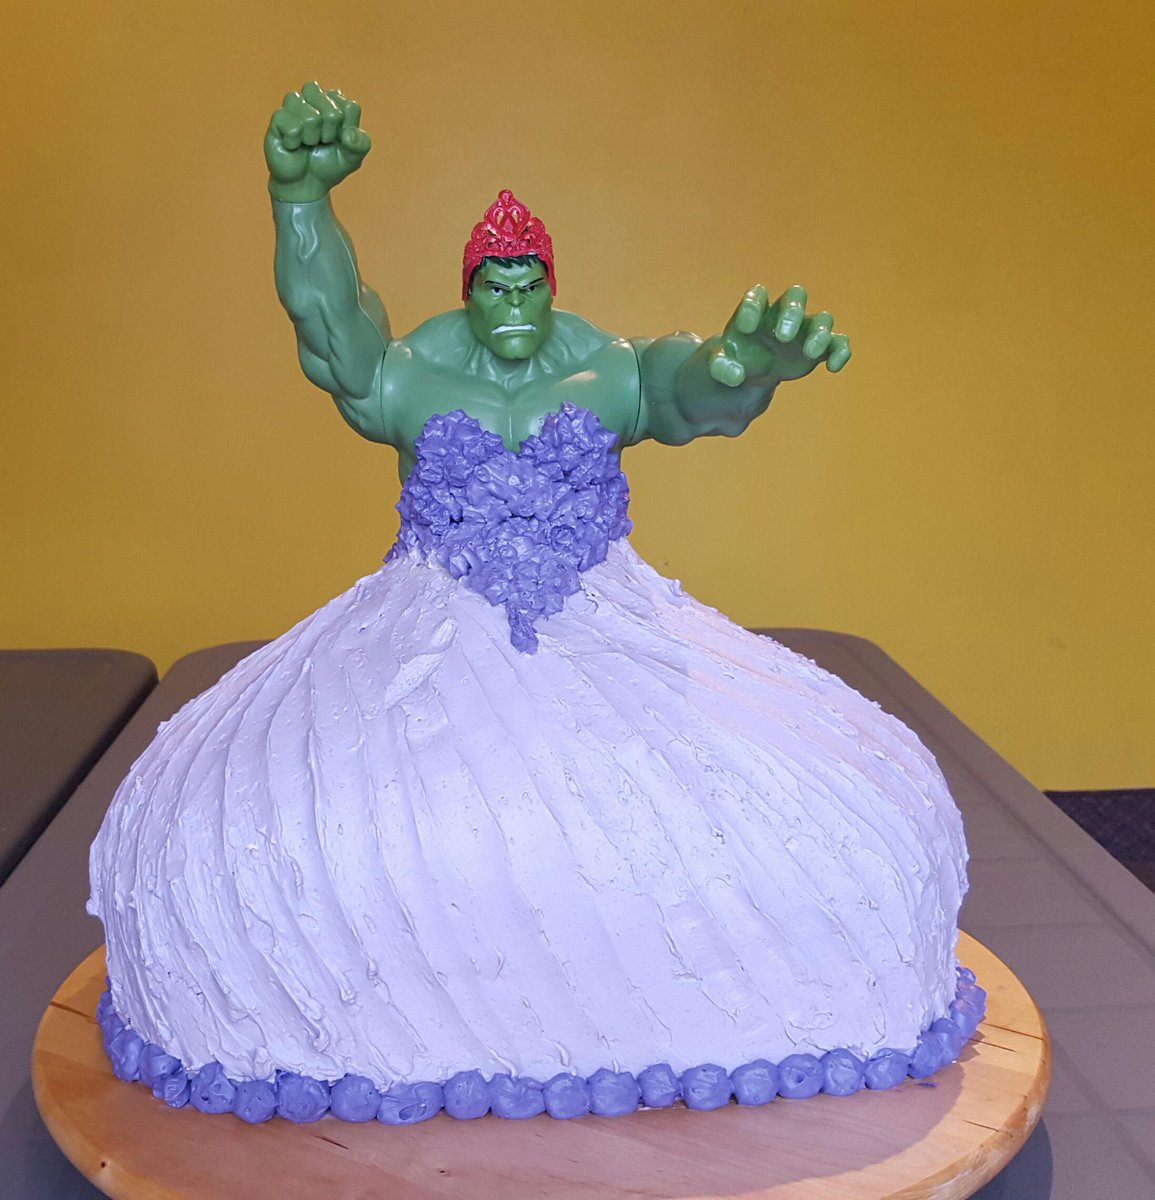 Twin 4 Year Old Girls Asked For A Hulk Princess Birthday Cake And That Is What They Received